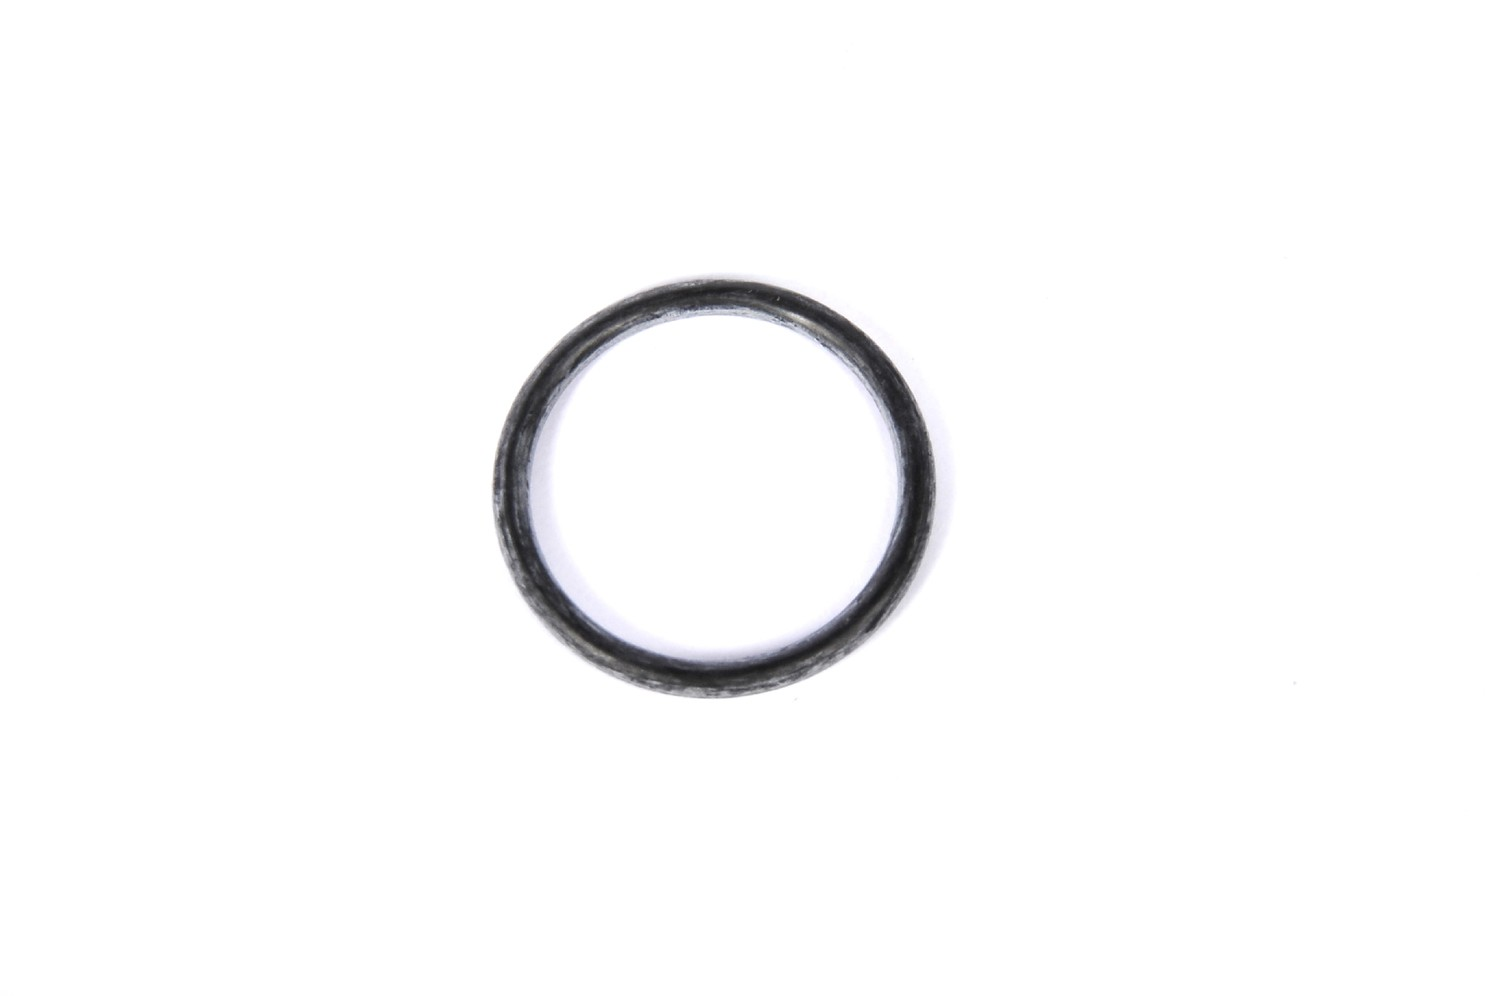 ACDELCO OE SERVICE - Superchgr Water Manif Gasket - DCB 12591348